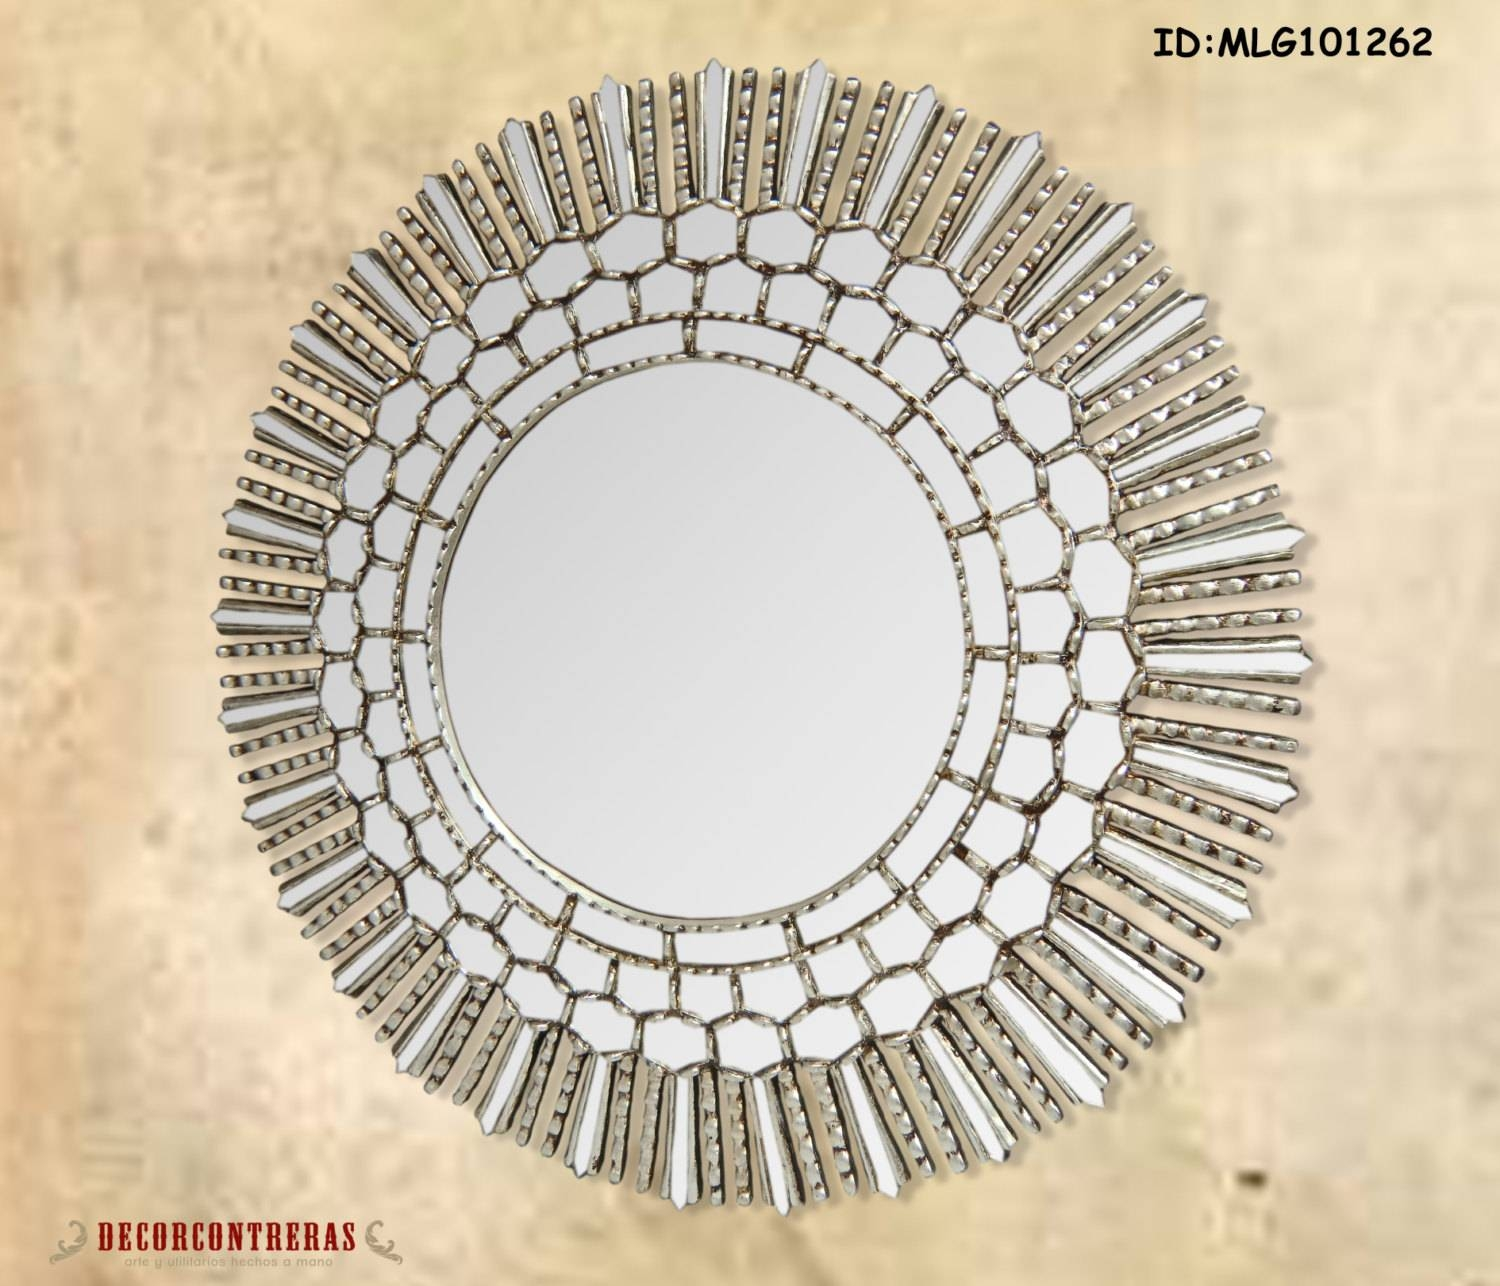 Large Round Decorative Wall Mirror Cuzco Style 31.5H with regard to Round Large Mirrors (Image 11 of 25)